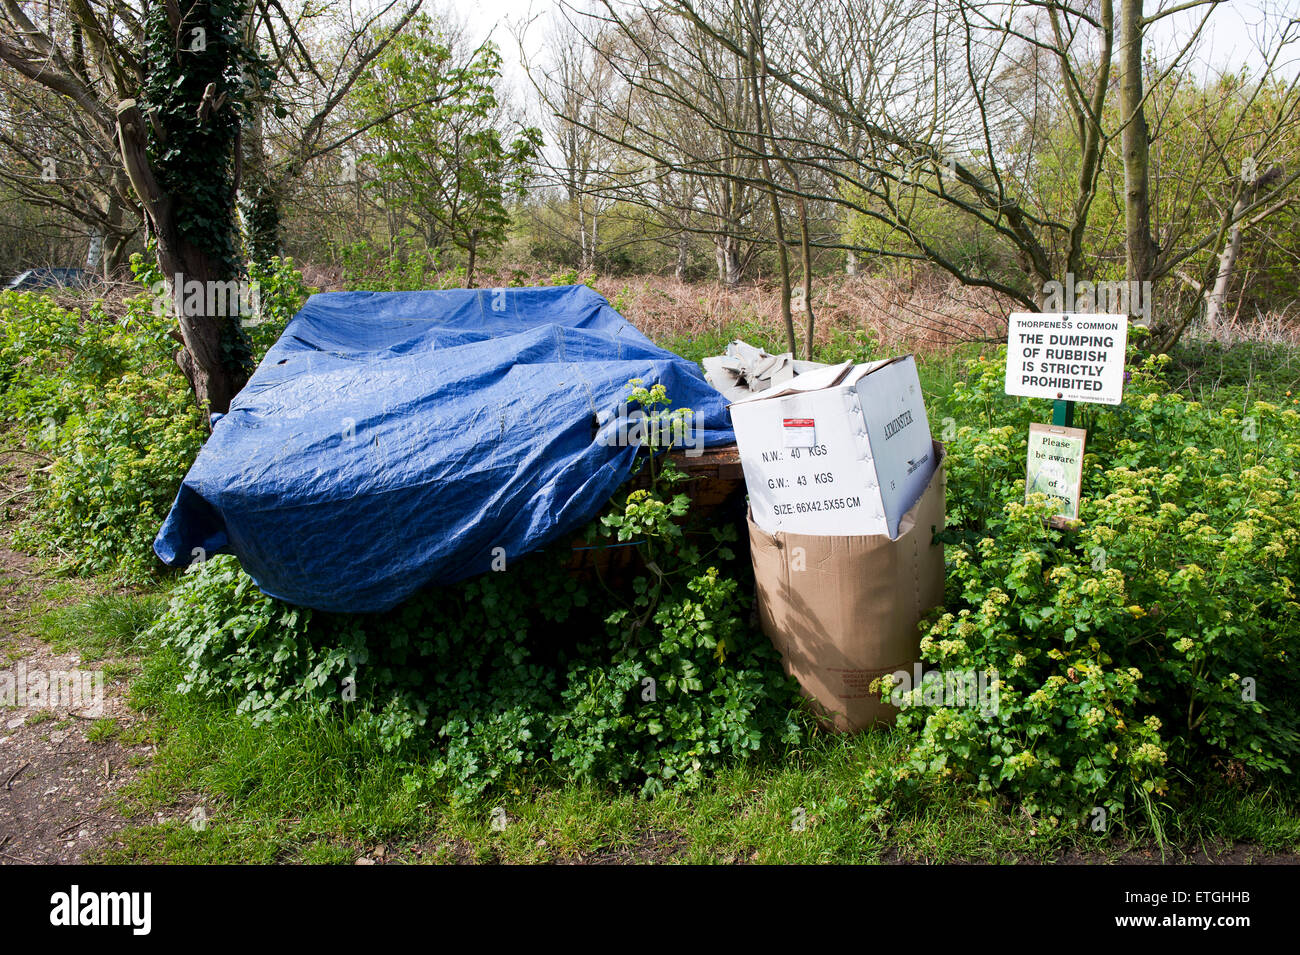 Rubbish discard at a prohibition sign Suffolk England UK Europe - Stock Image